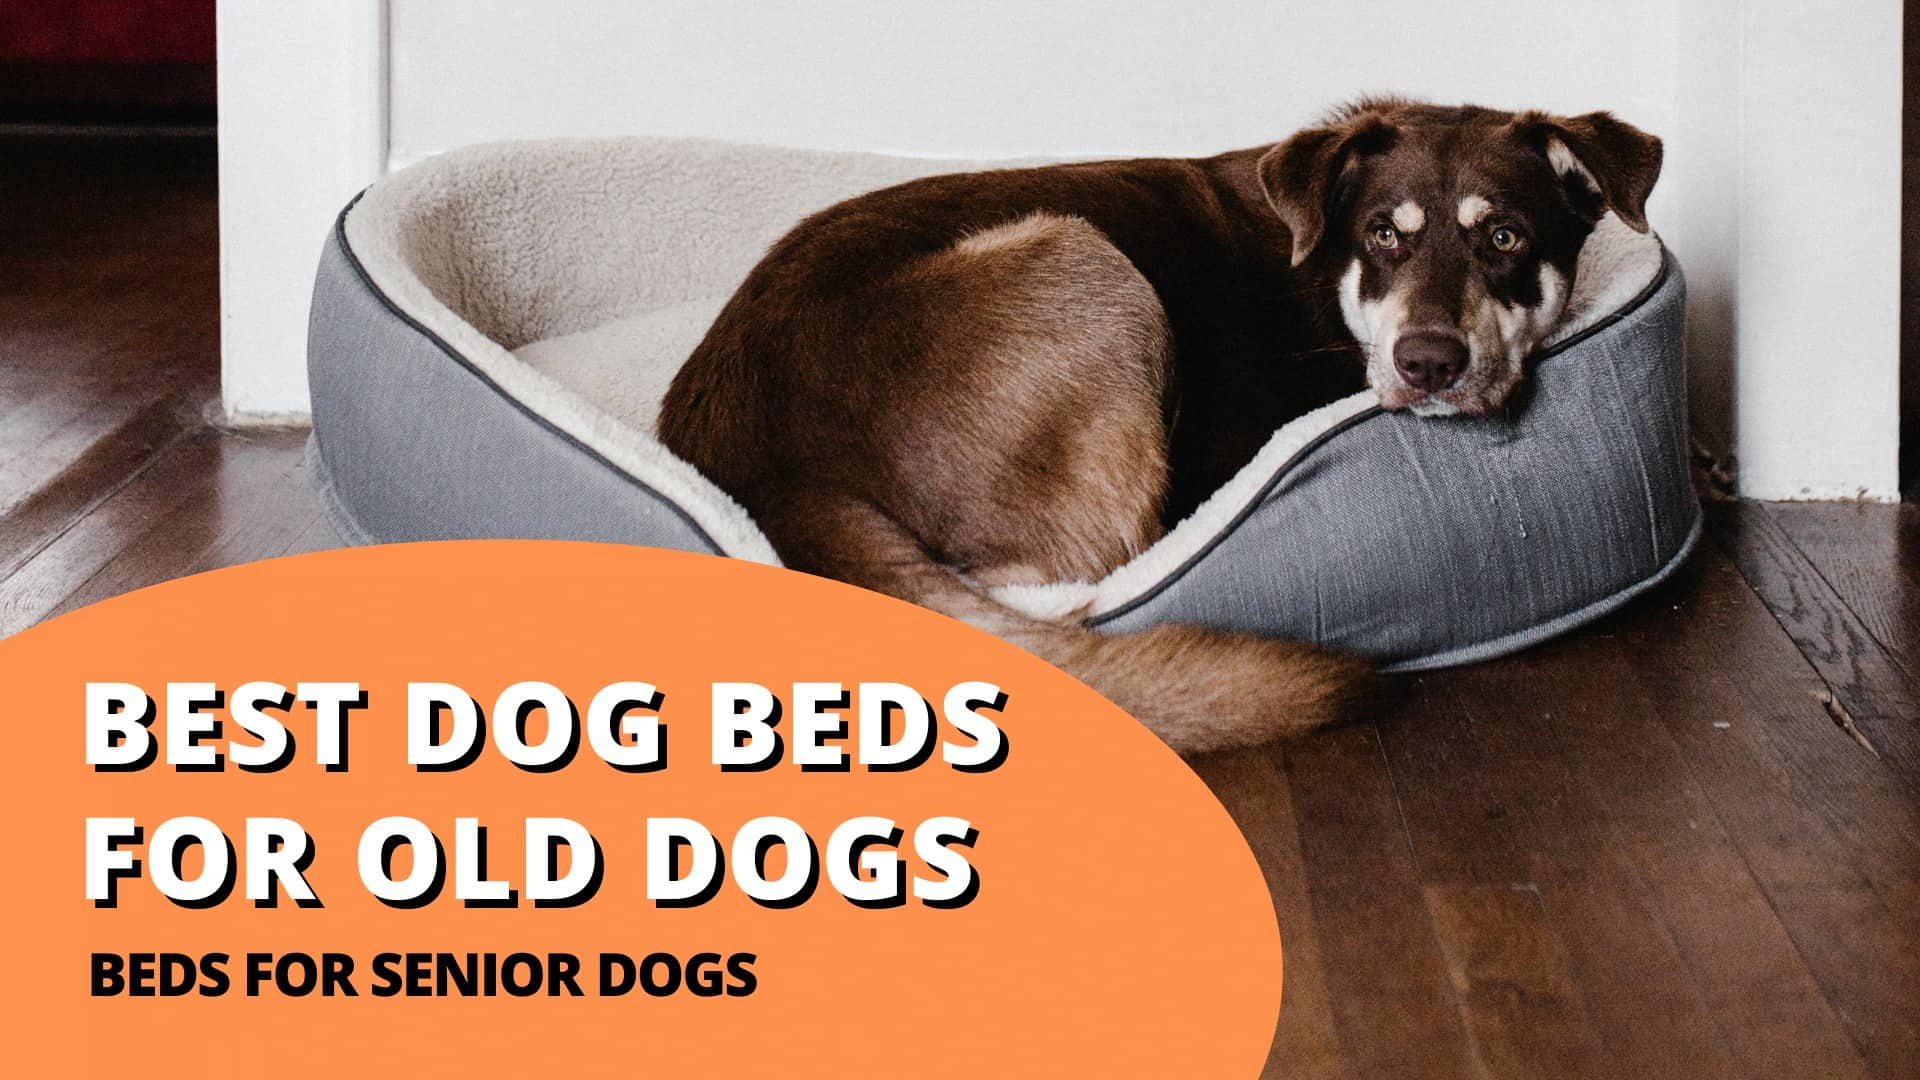 Best dog beds for old dogs (beds for senior dogs)